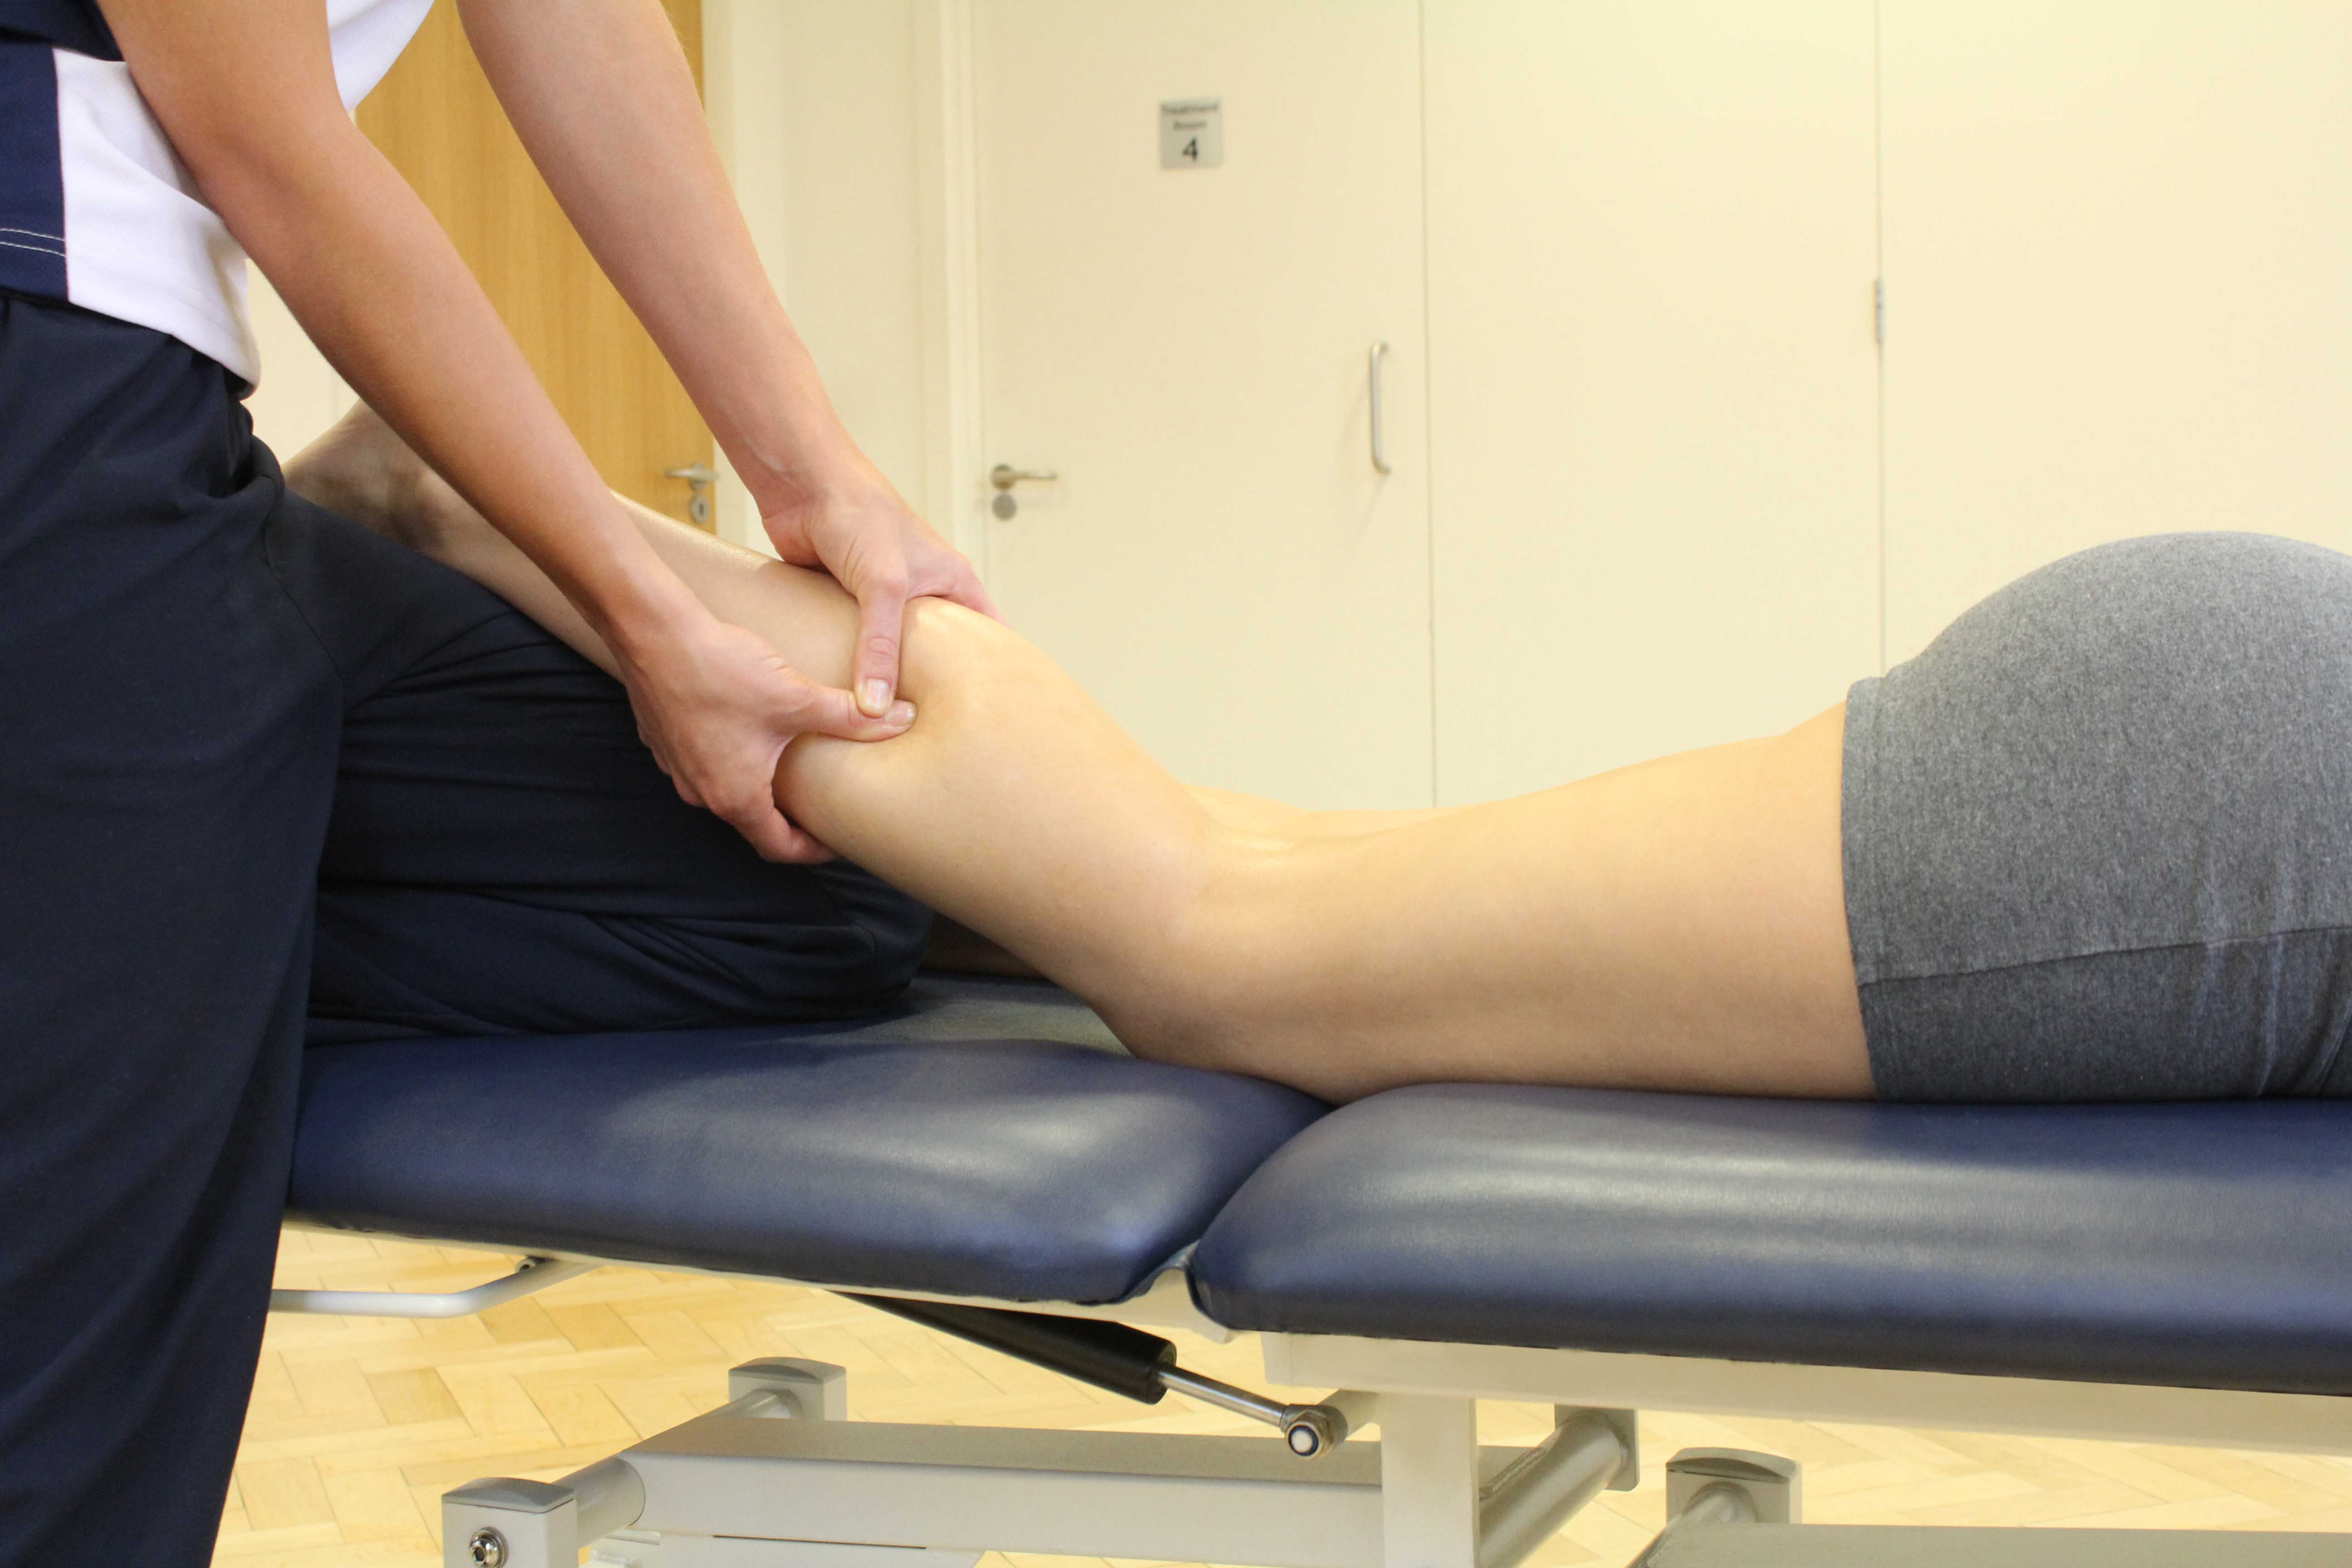 Trigger point massage applied to soleus muscle by specilaist therapist